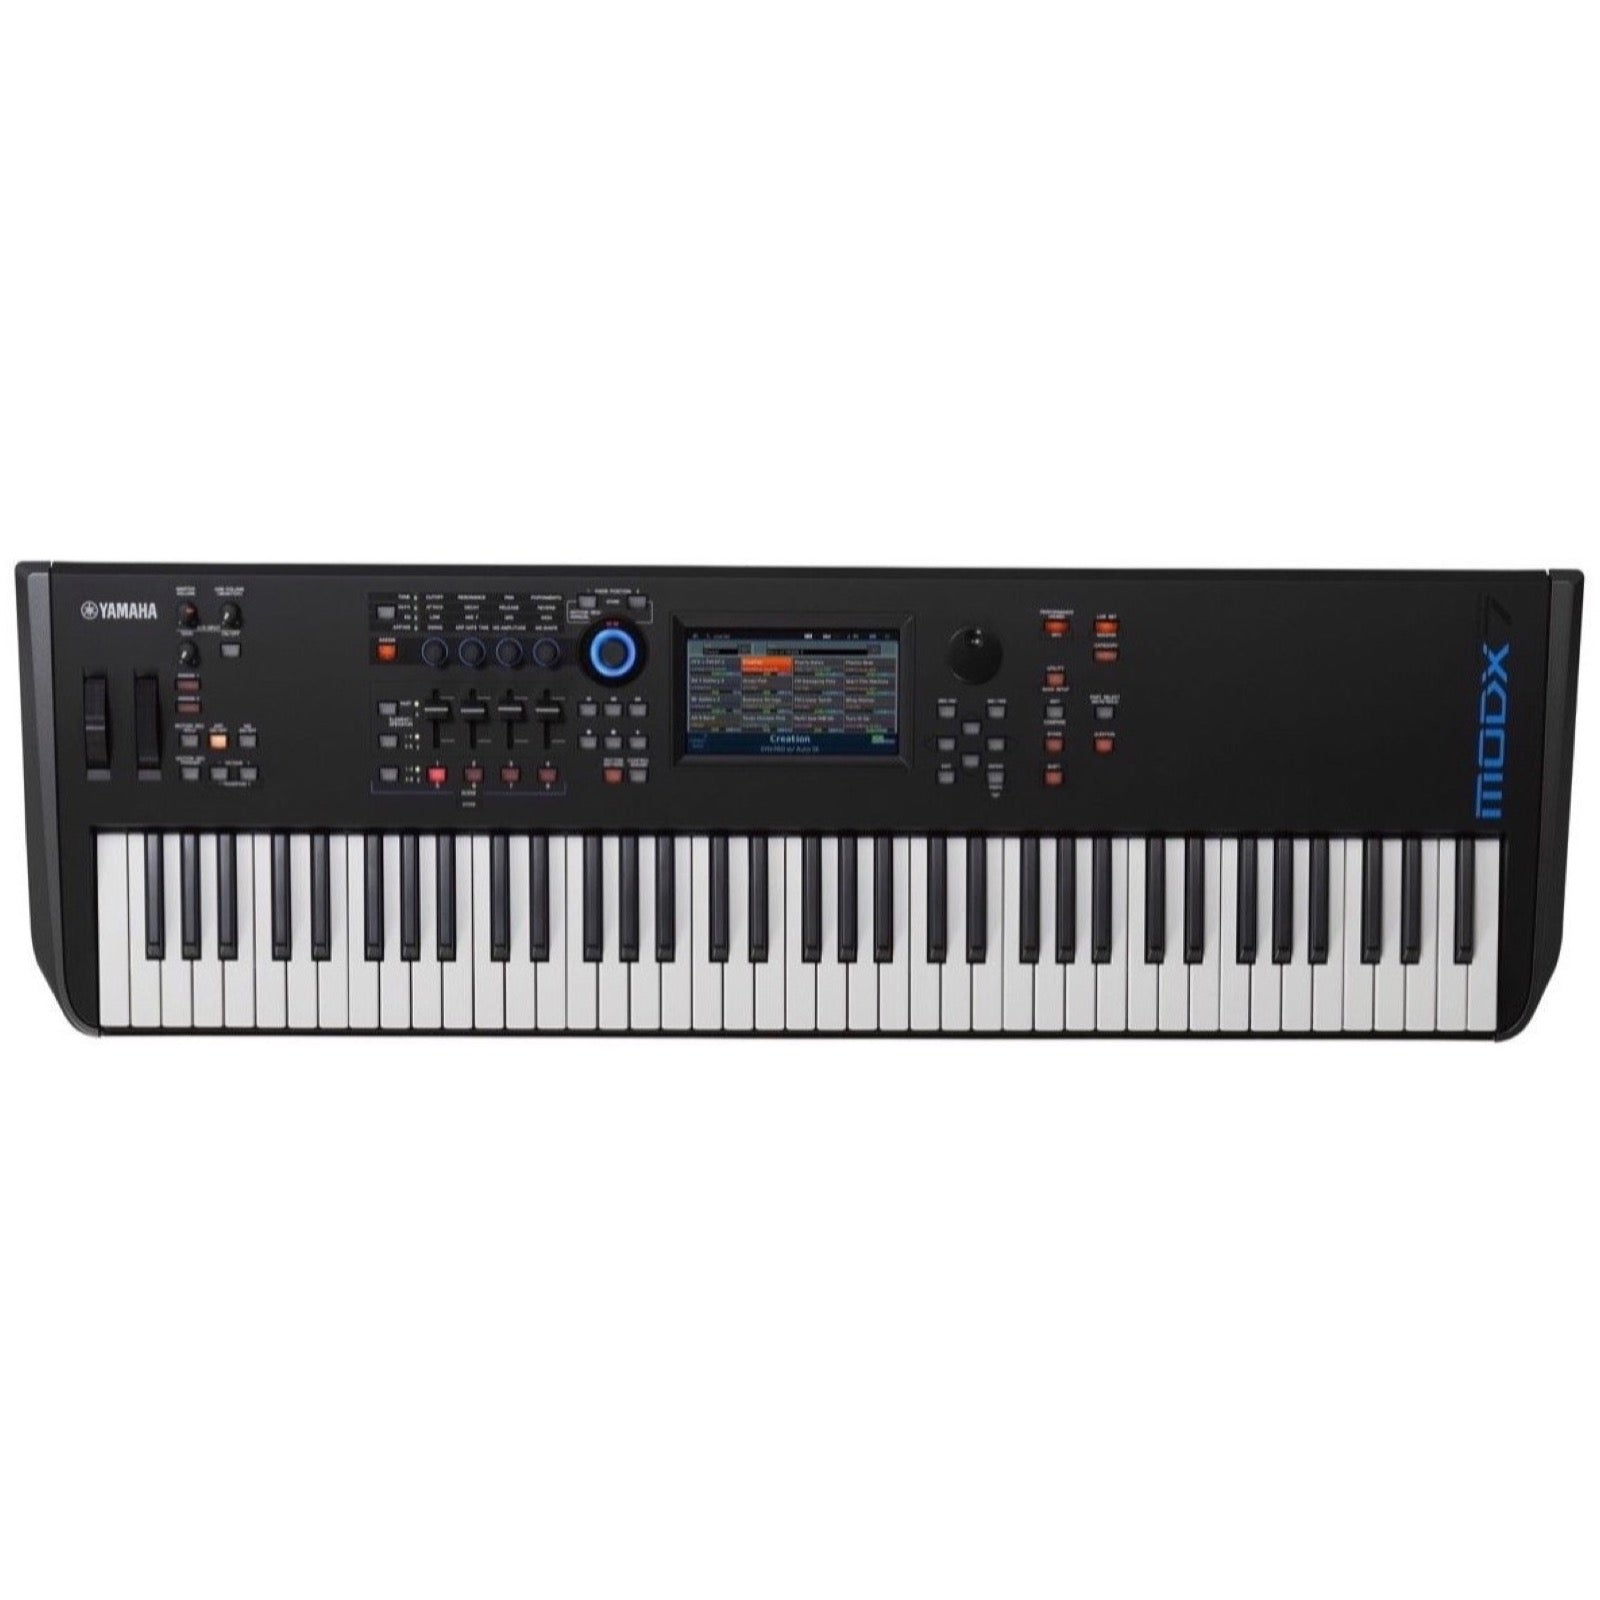 Yamaha MODX7 Keyboard Synthesizer, 76-Key